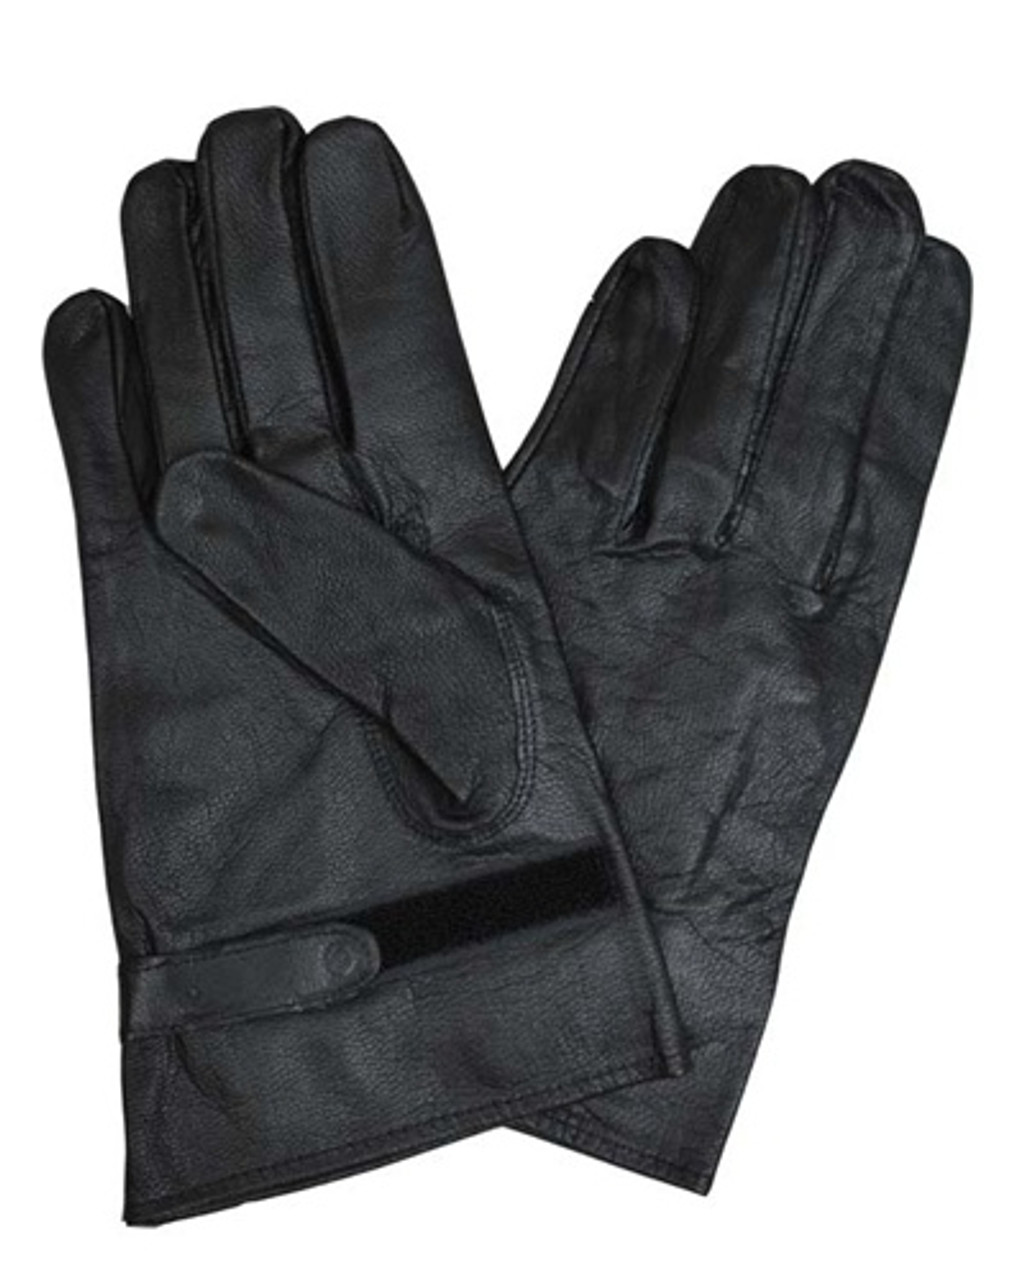 Black Leather Gloves from Hessen Antique